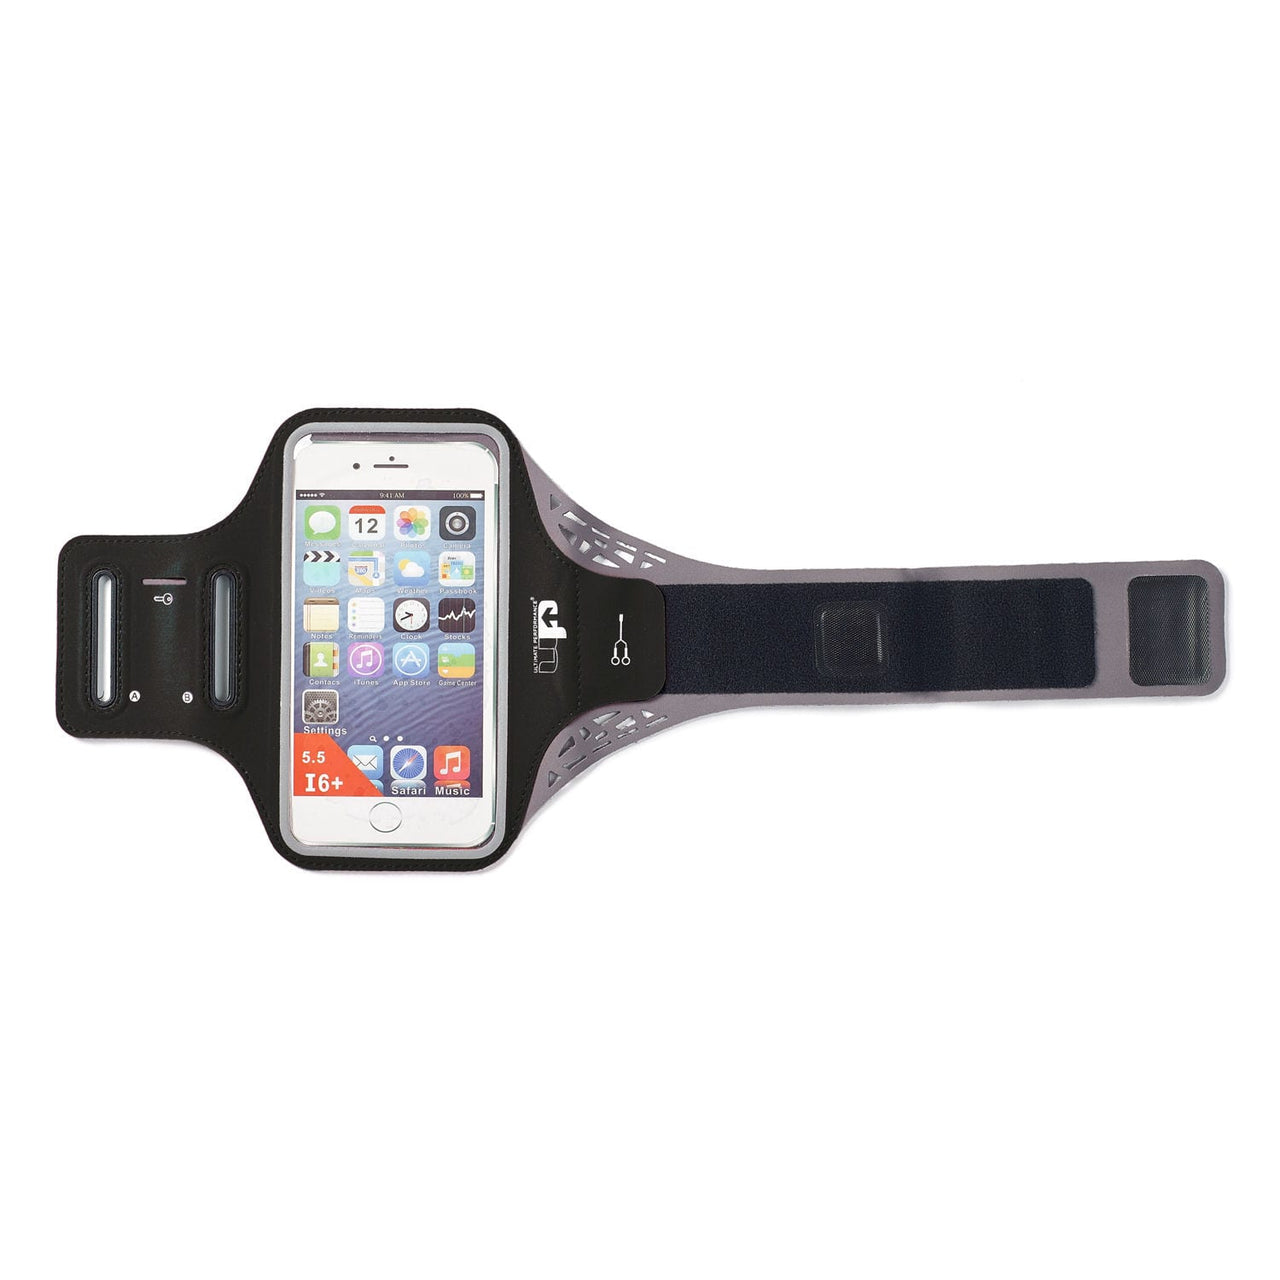 Ridgeway Phone Holder Armband